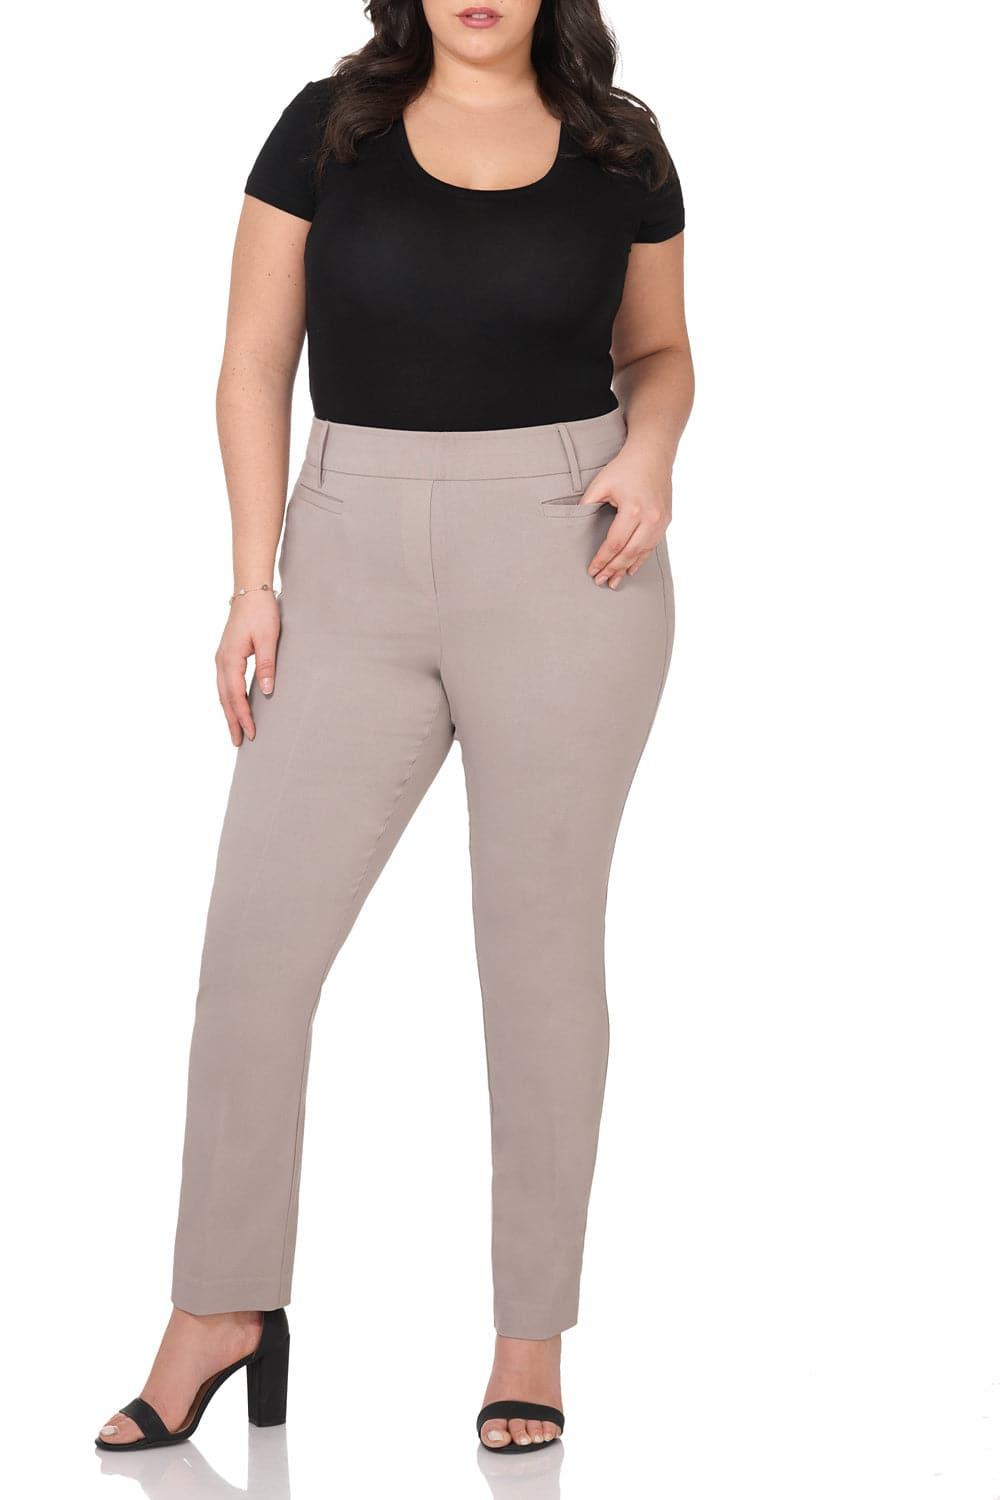 373baa640ac Curvy Woman Ease into Comfort Straight Leg Pant with Tummy Control ...